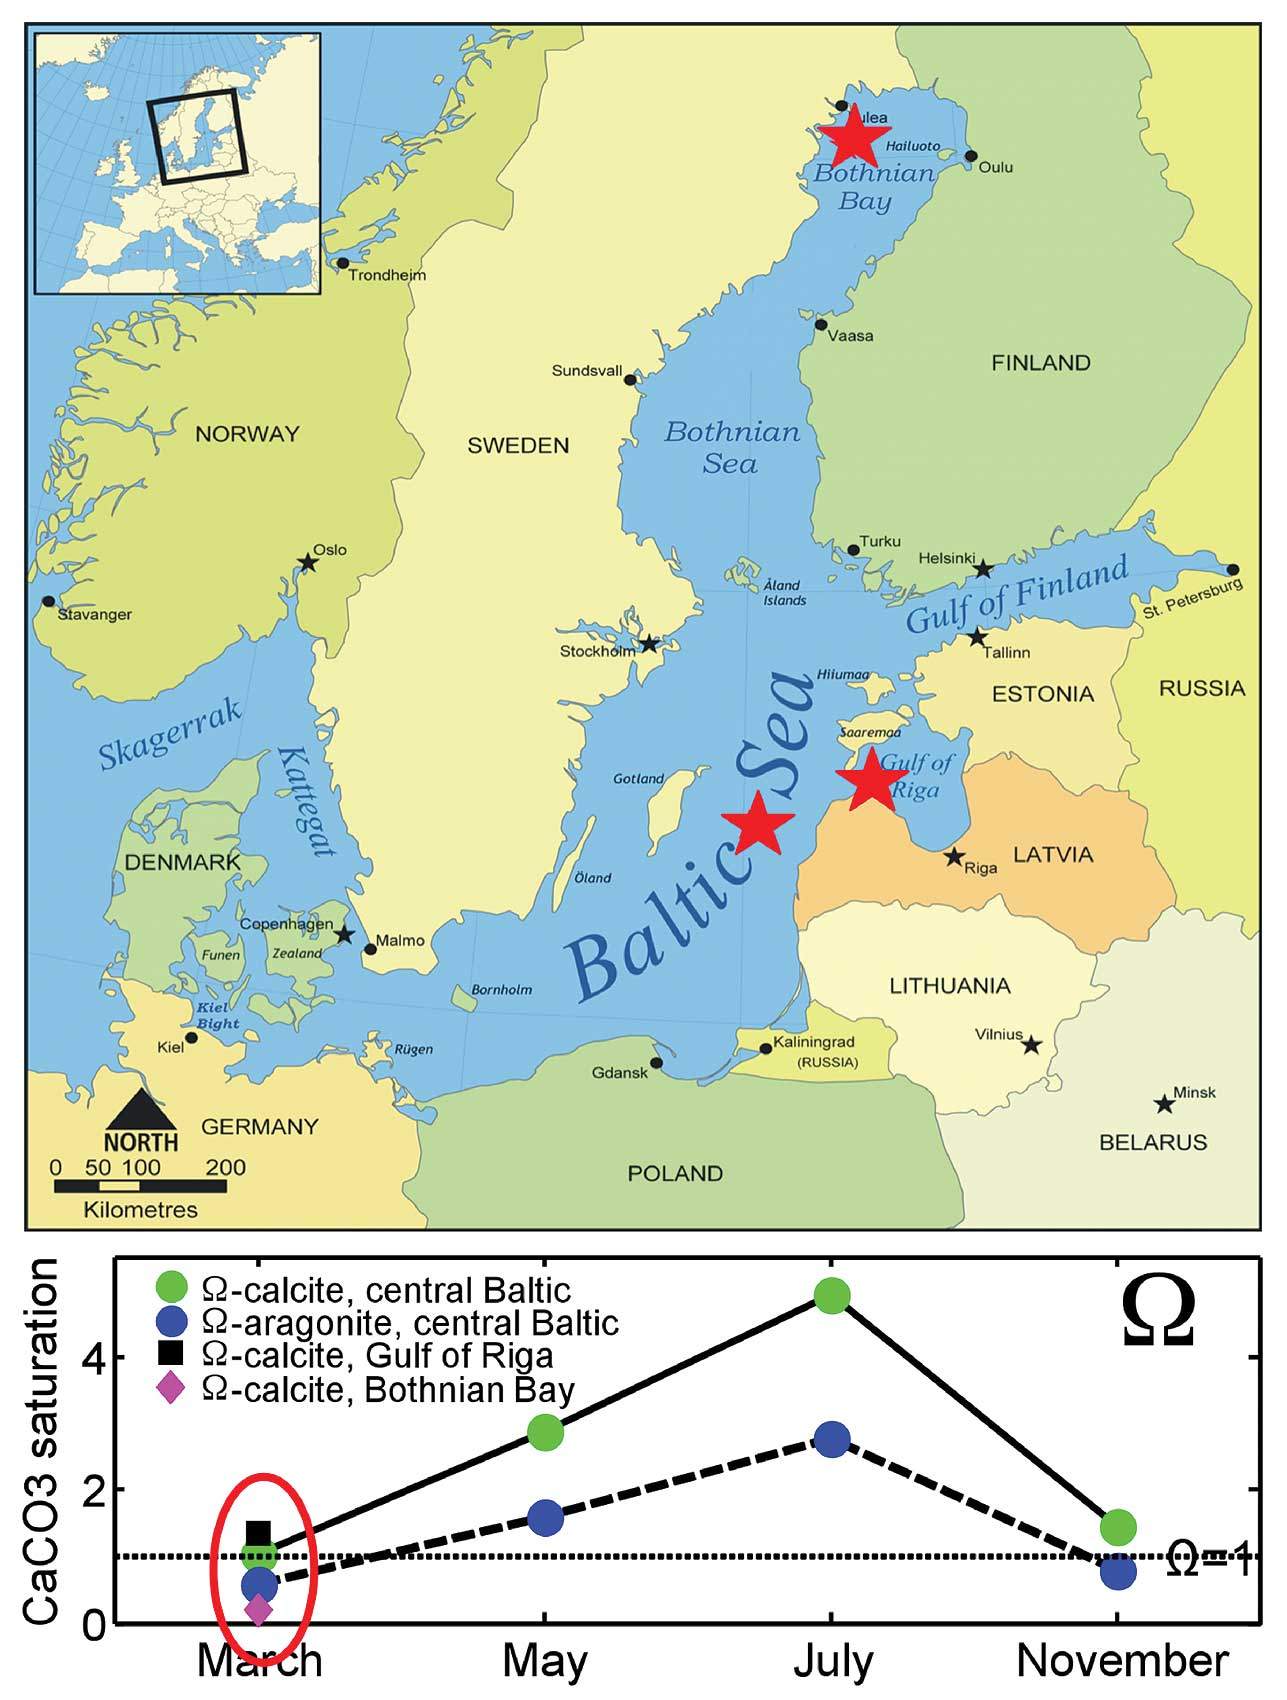 Low winter CaCO3 saturation in the Baltic Sea: consequences for ...